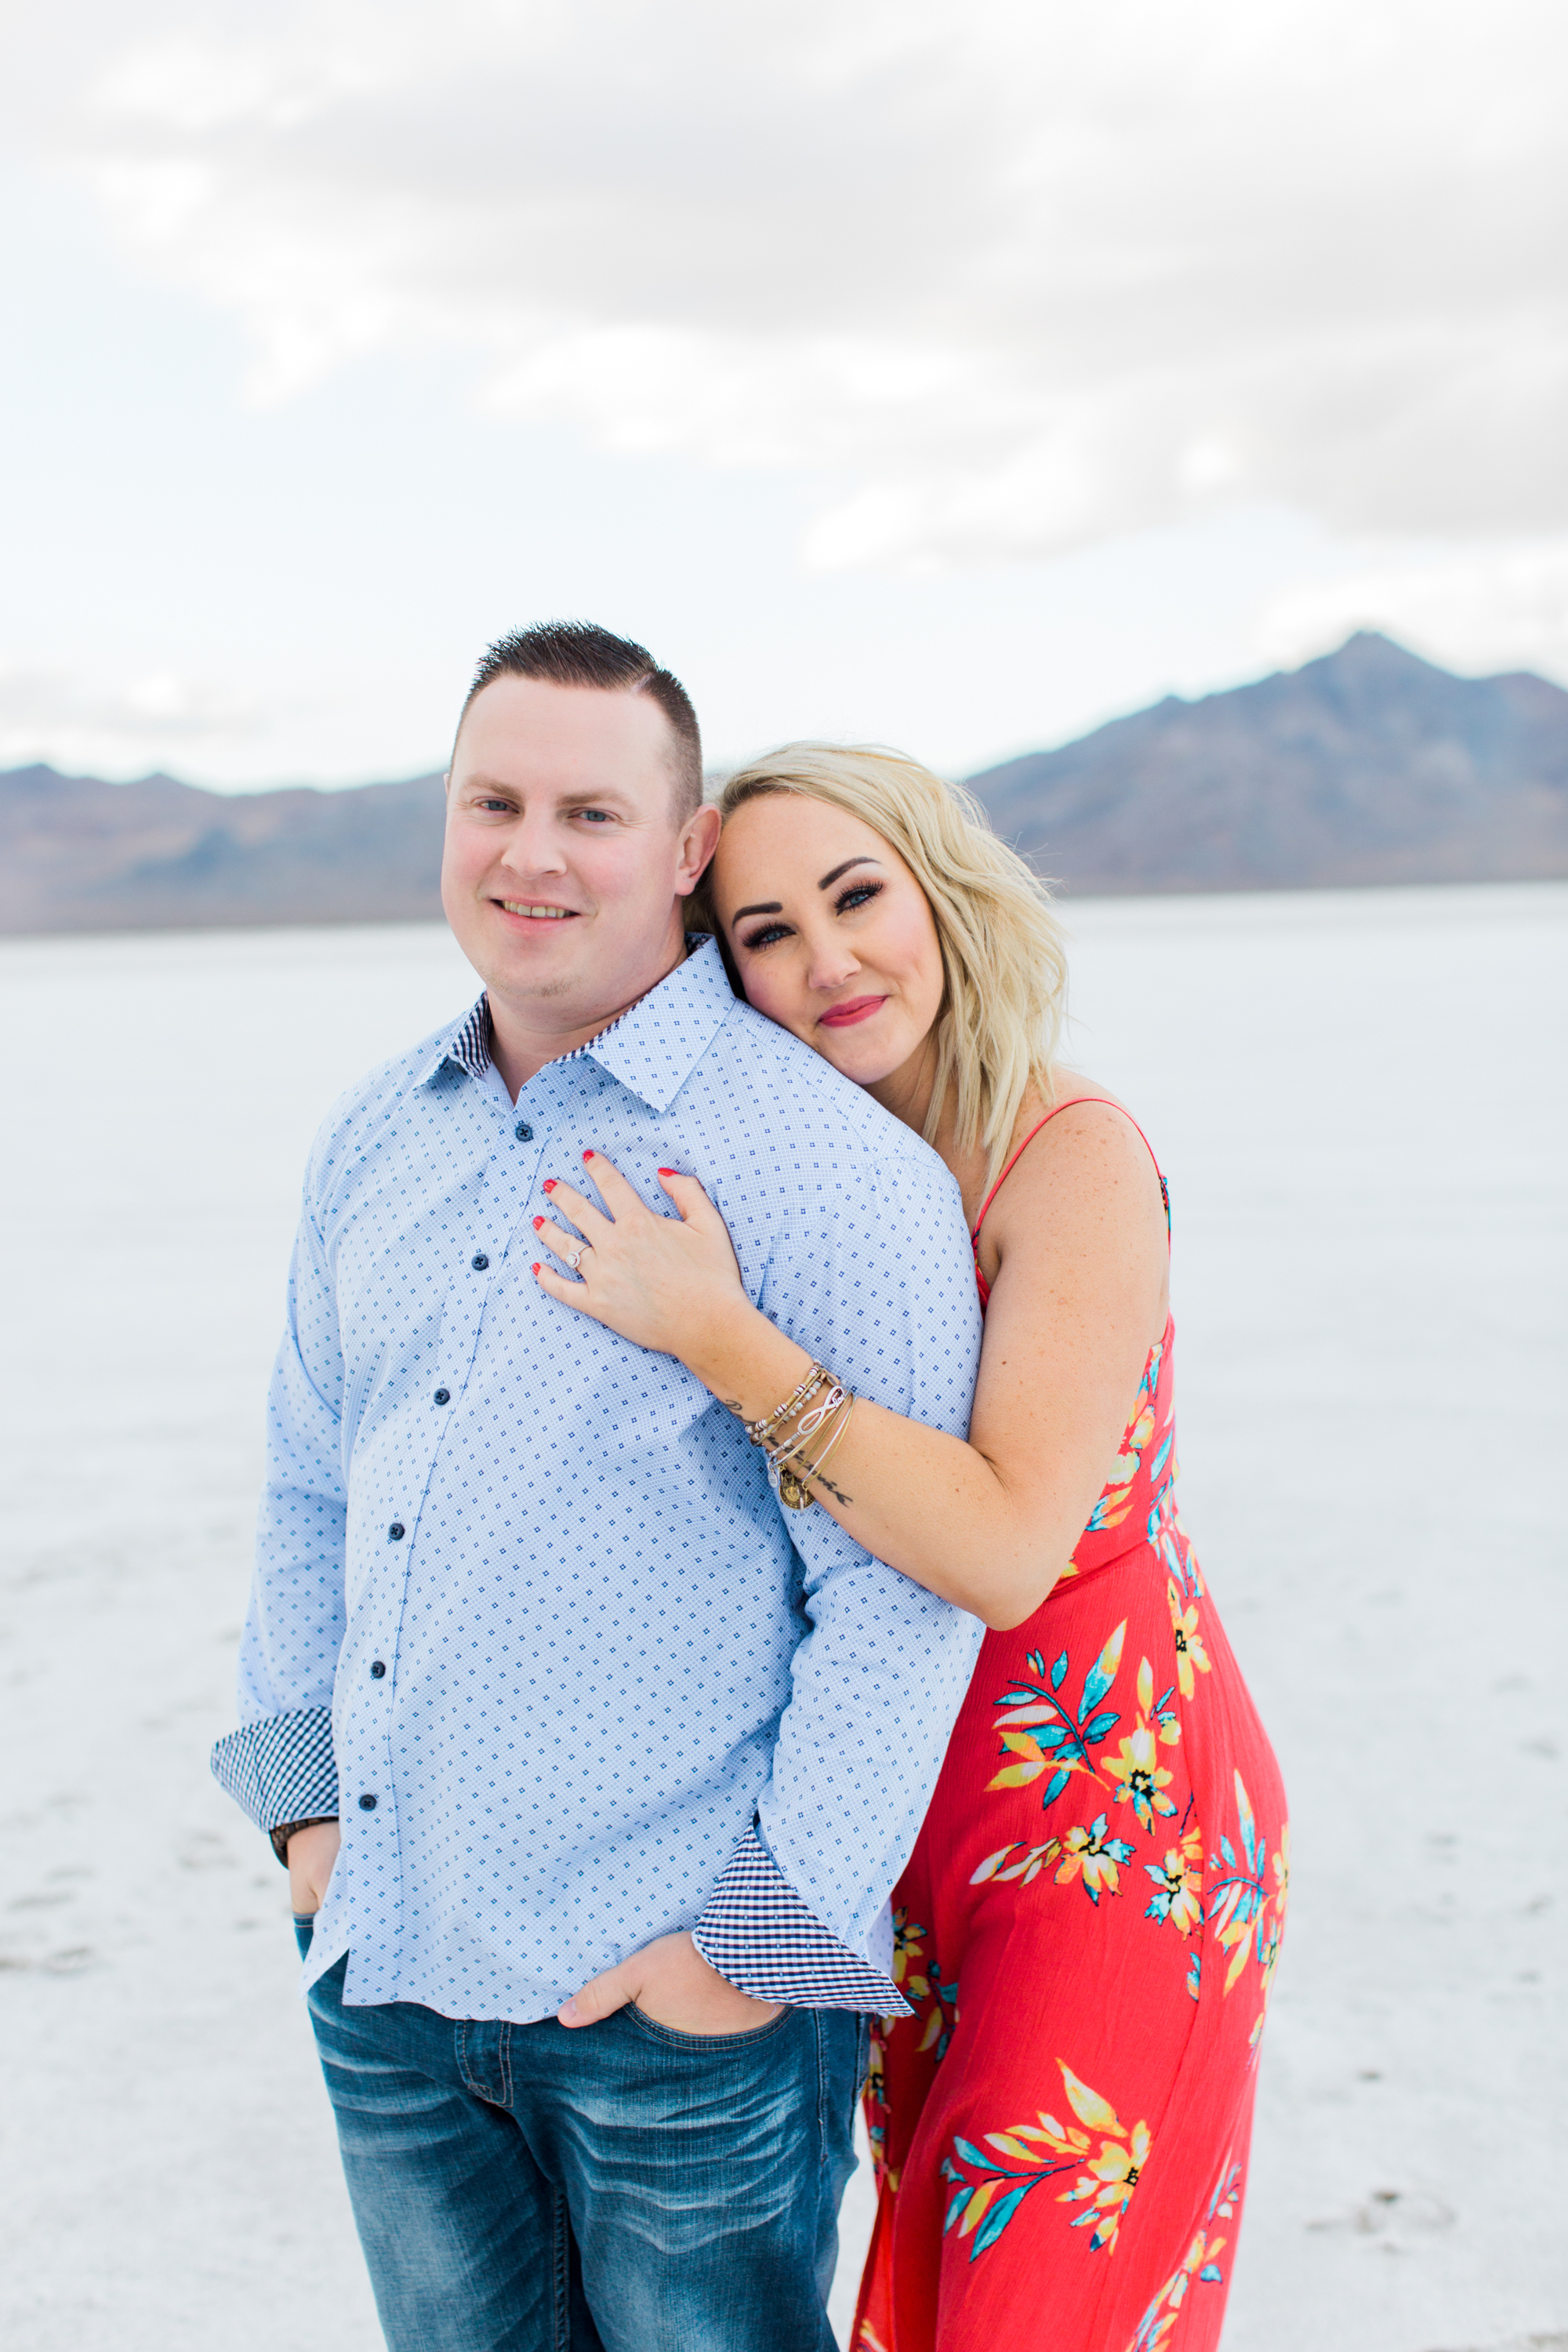 Tara-Mike-Engagements-64.jpg